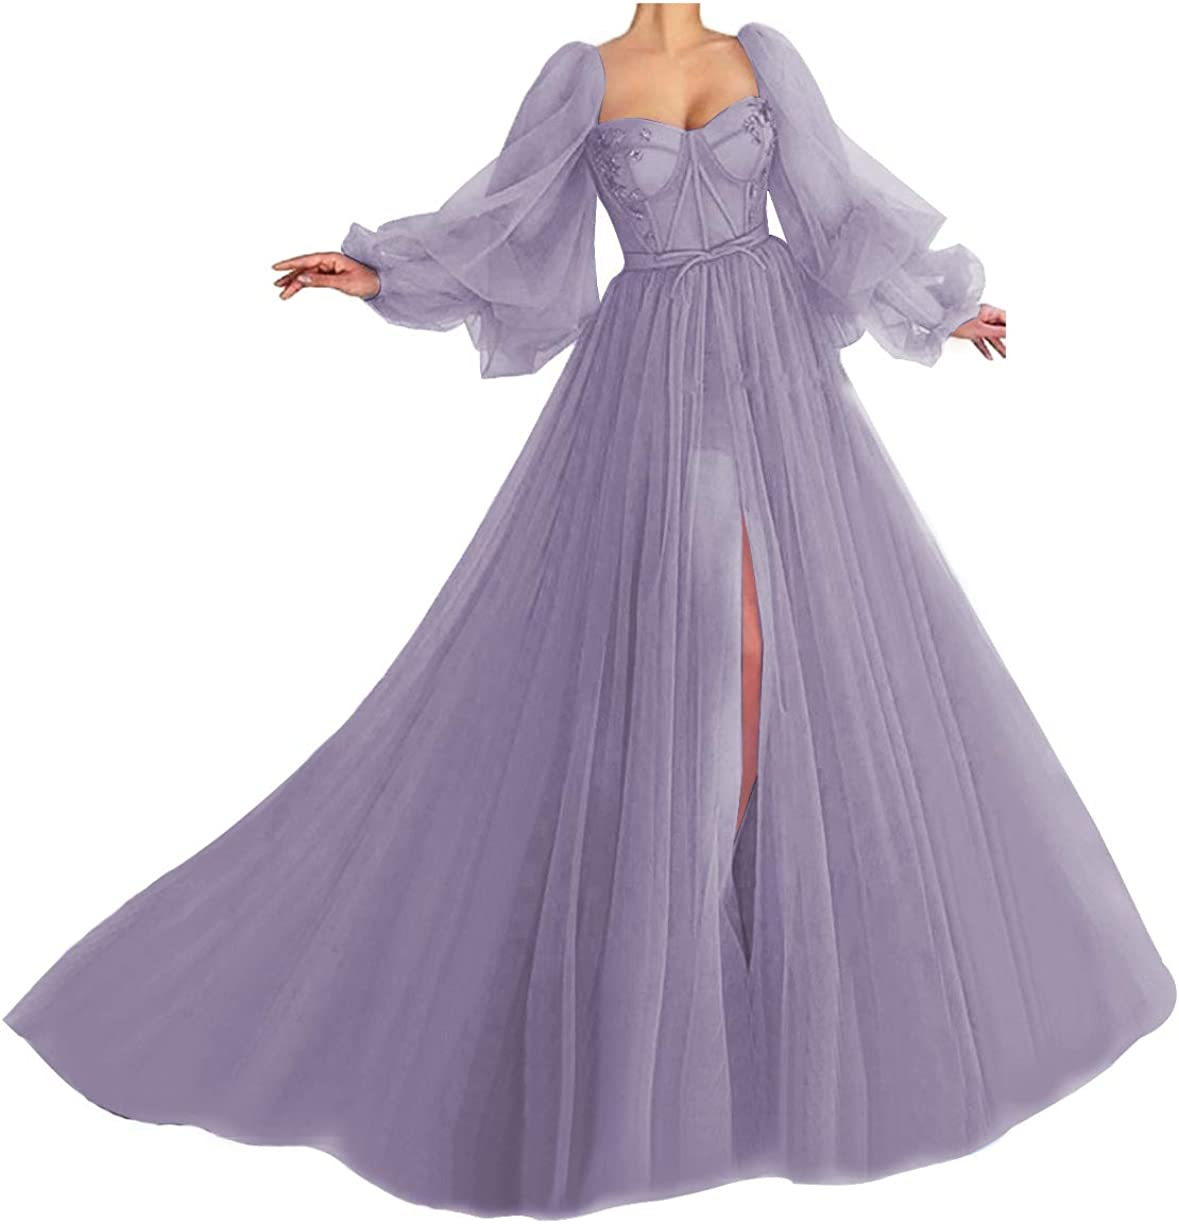 Women's Puffy Sleeve Prom Dress Ball Gown Tulle Sweetheart Wedding Formal Evening Gowns with Split